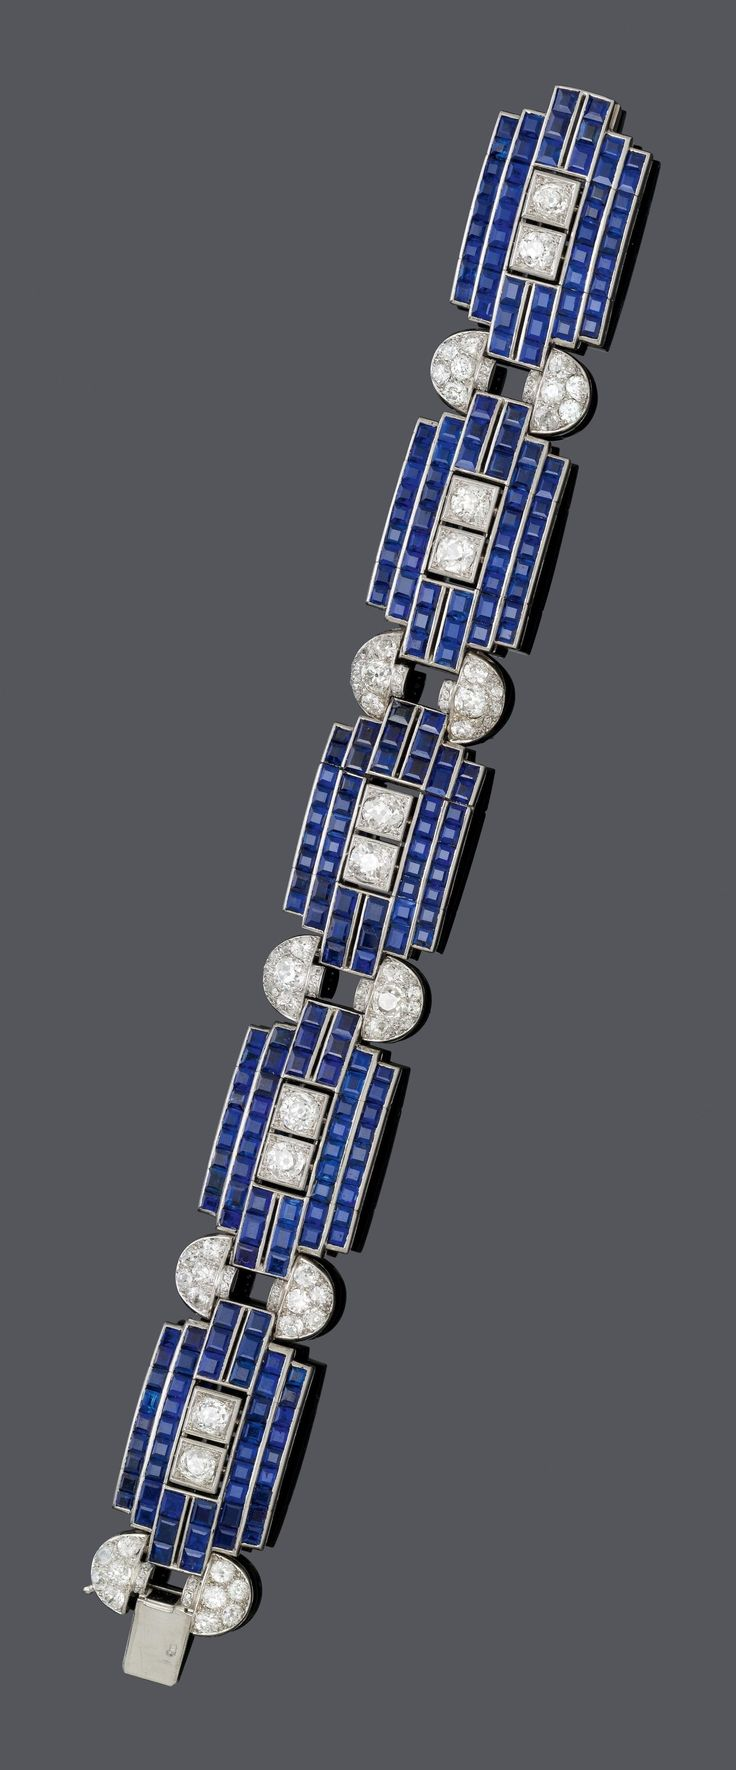 AN ART DECO PLATINUM, SAPPHIRE AND DIAMOND BRACELET, CIRCA 1930. Composed of five rectangular links, each set with 48 sapphire-carrés and two central circular-cut diamonds, joined by oval, diamond-set links.